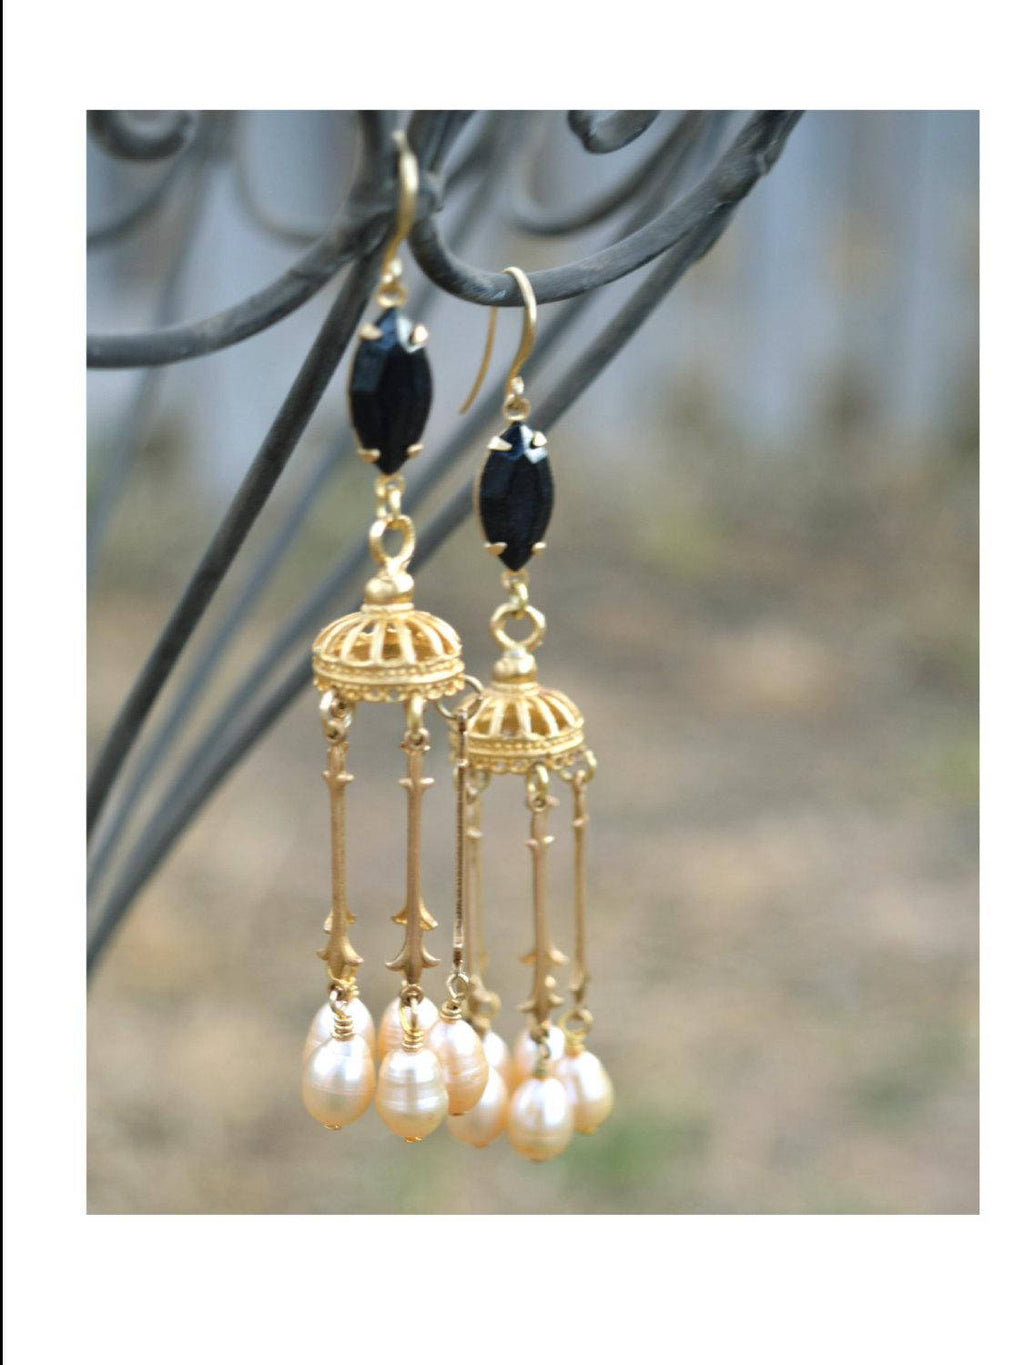 Long, gold chandelier earrings with black gemstones and ivory pearls.